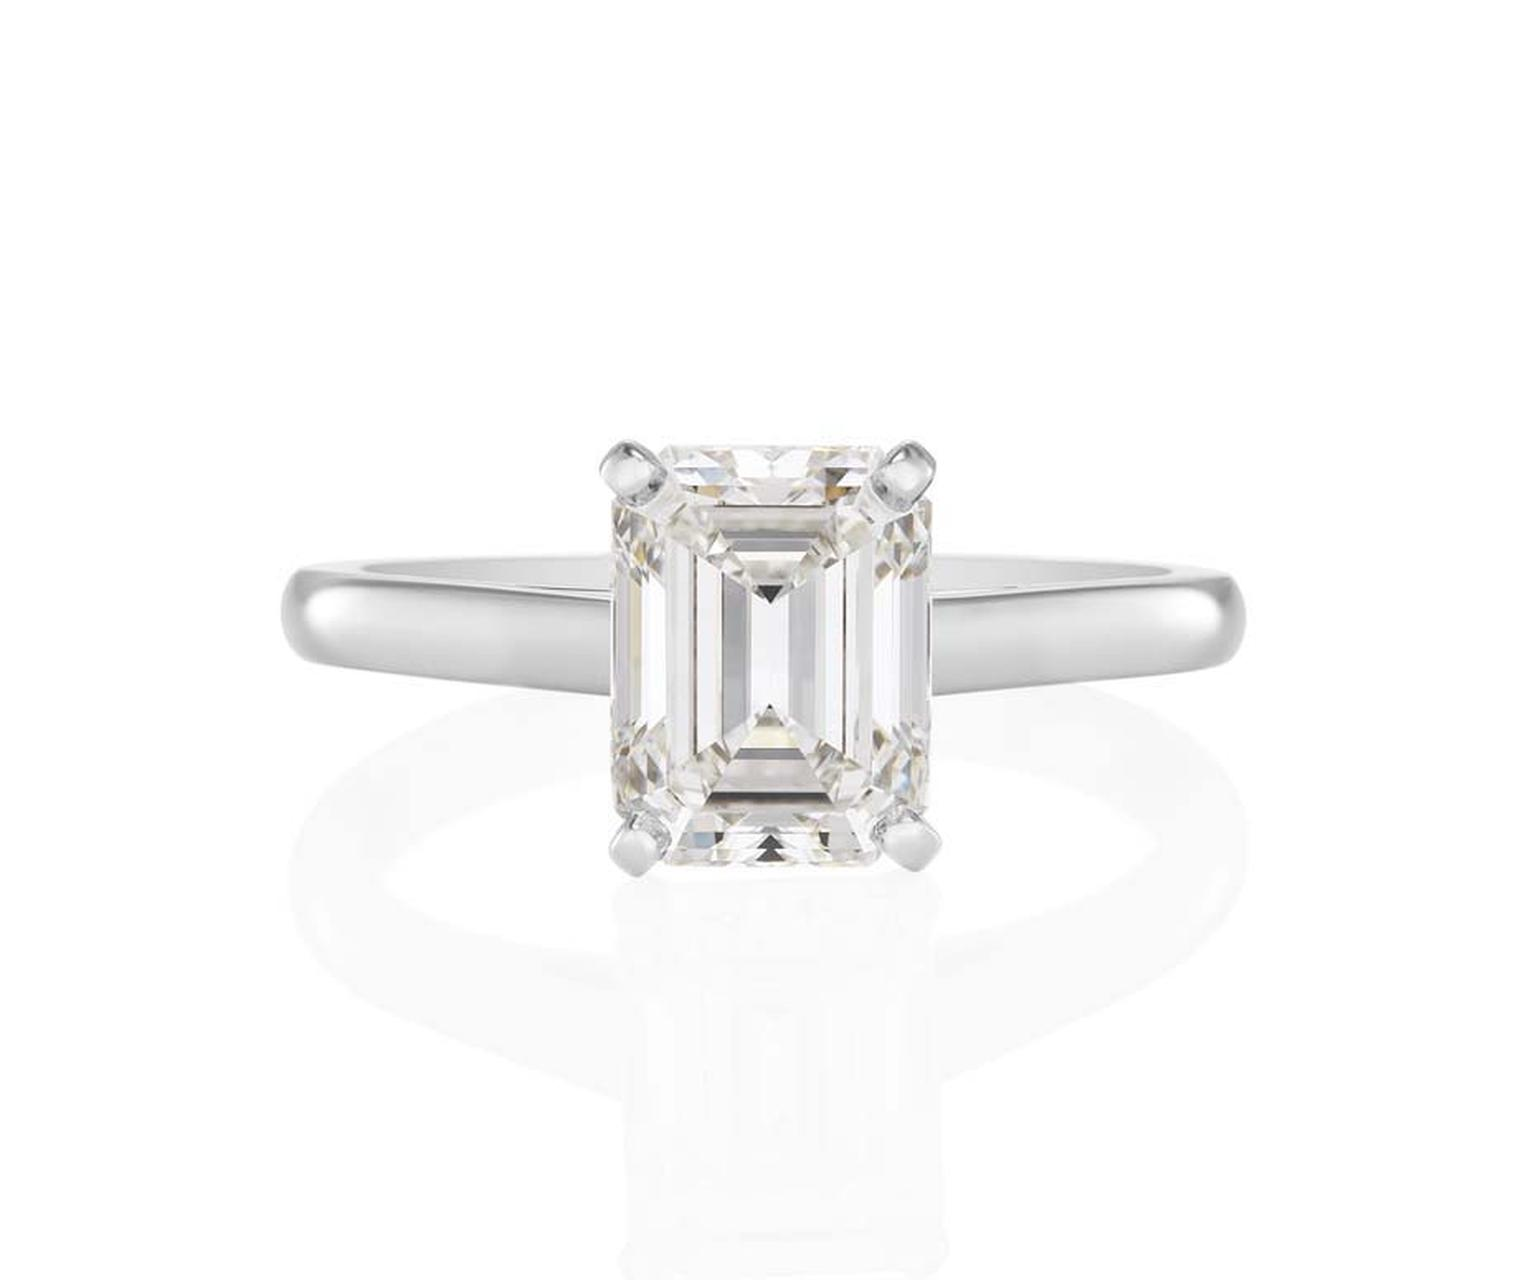 De Beers Classic Solitaire engagement ring featuring a four-prong-set emerald-cut solitaire on a platinum ban